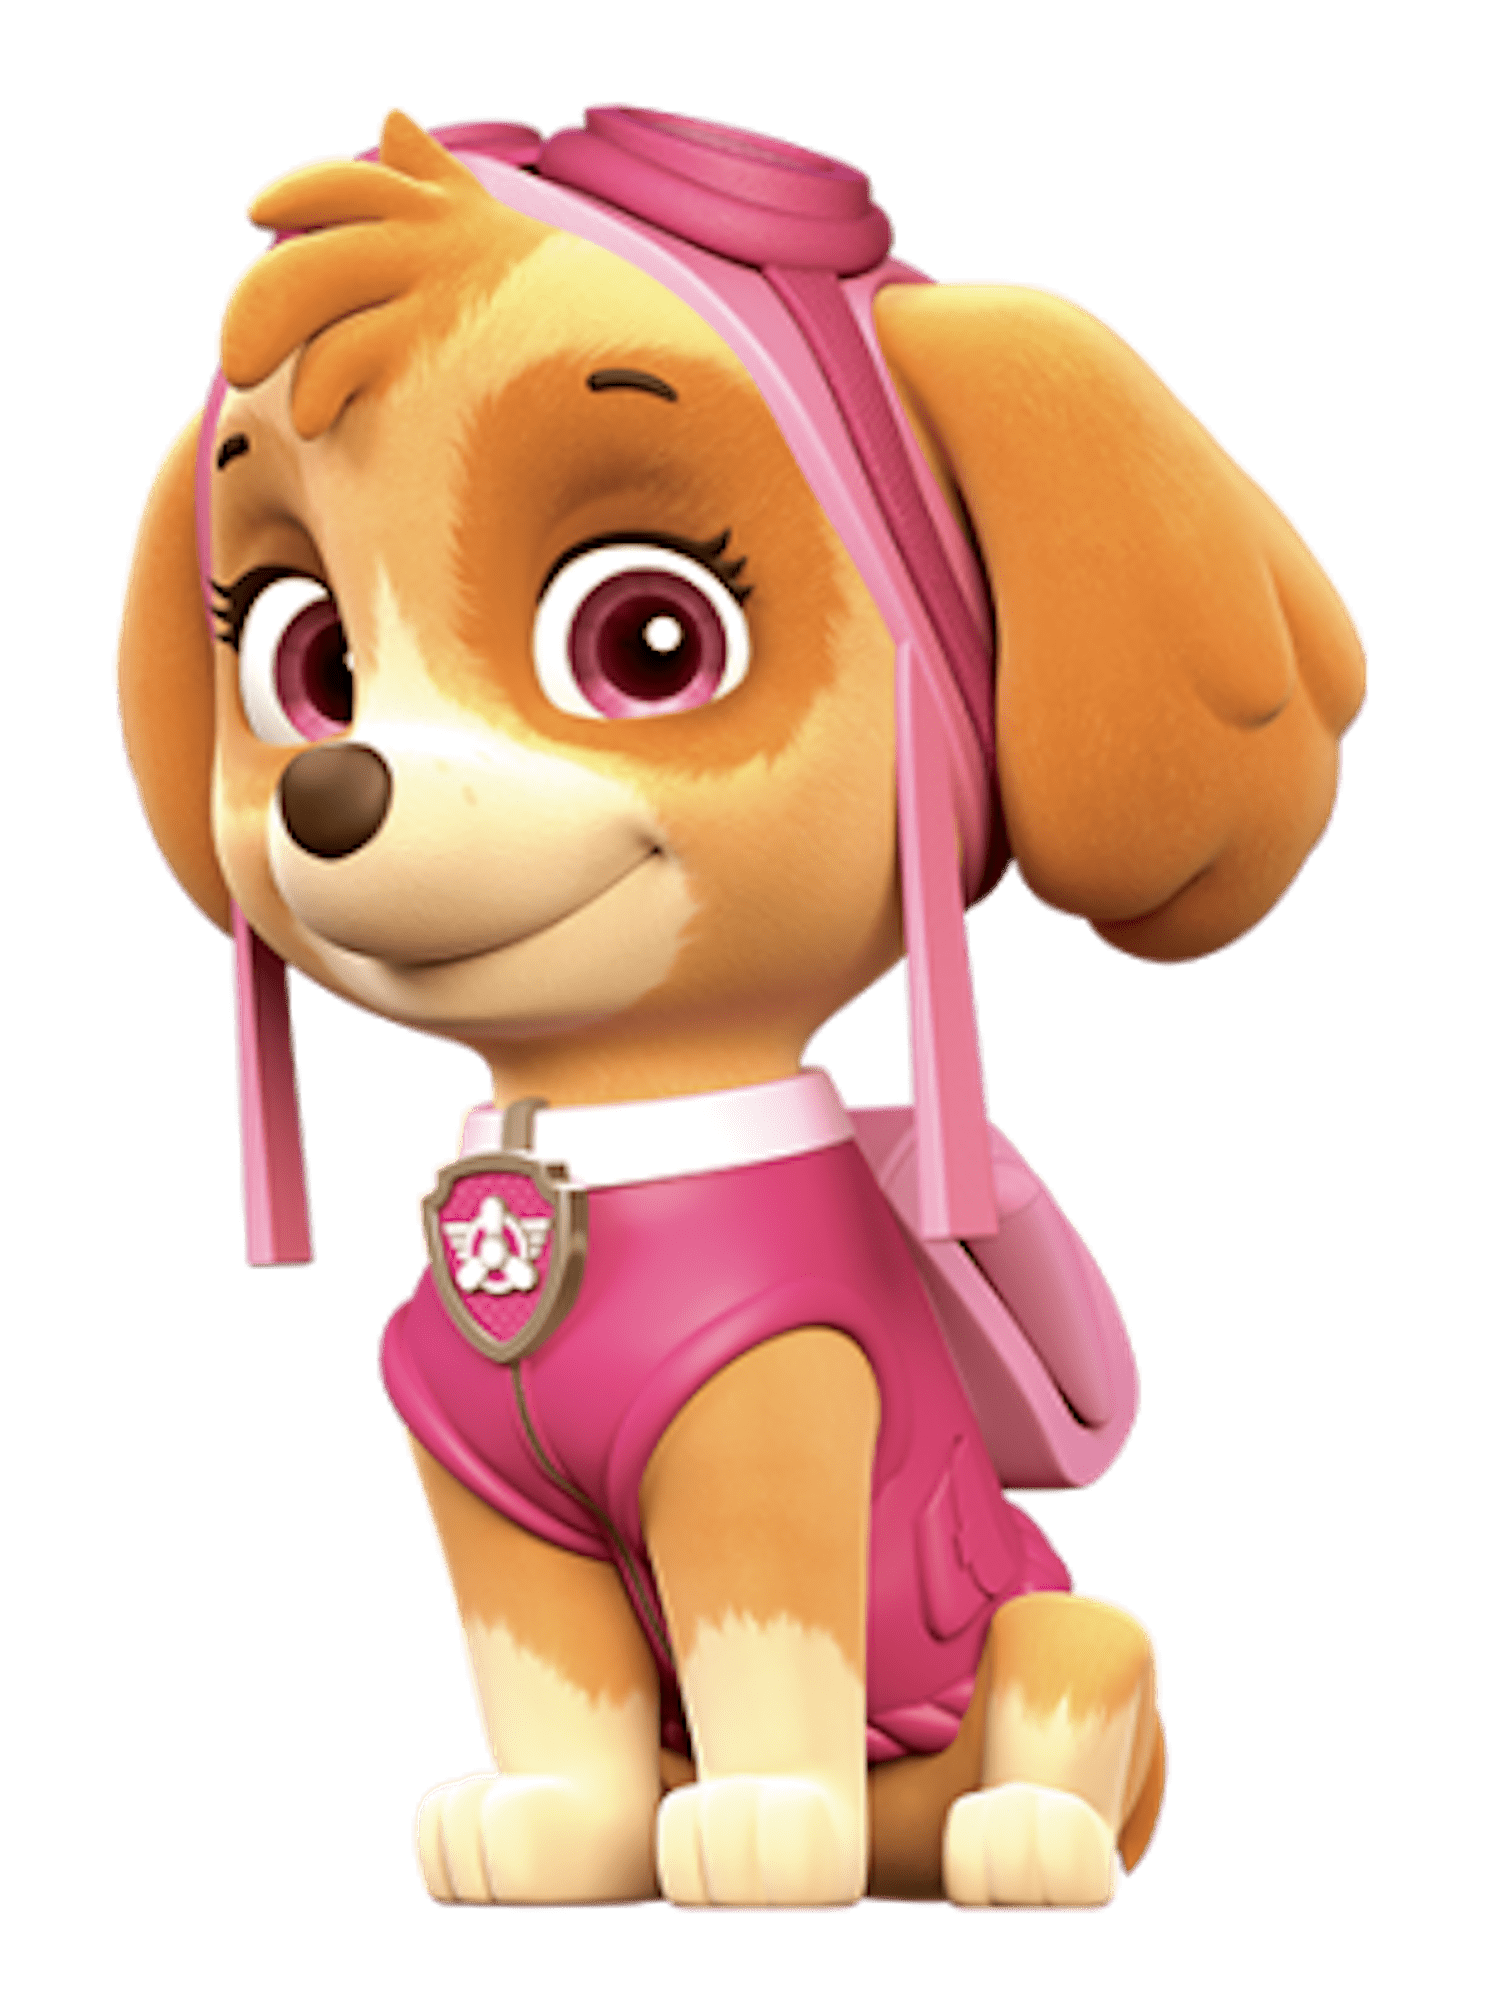 Paw Patrol Skye Android Wallpapers